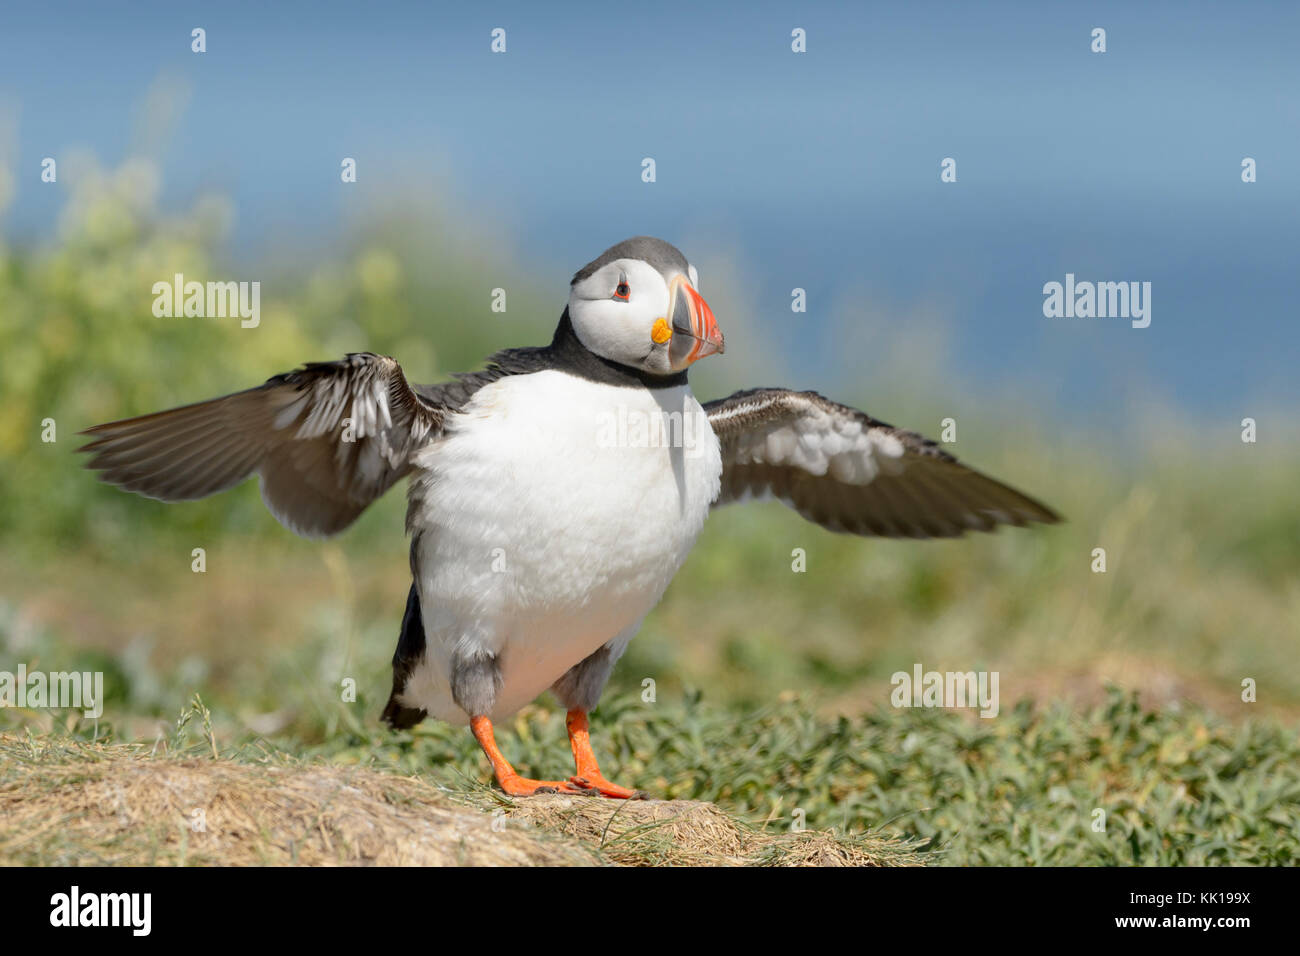 Atlantic puffin (Fratercula arctica) standing on cliff edge, flapping wings, Farne Islands, Northumberland, England, - Stock Image